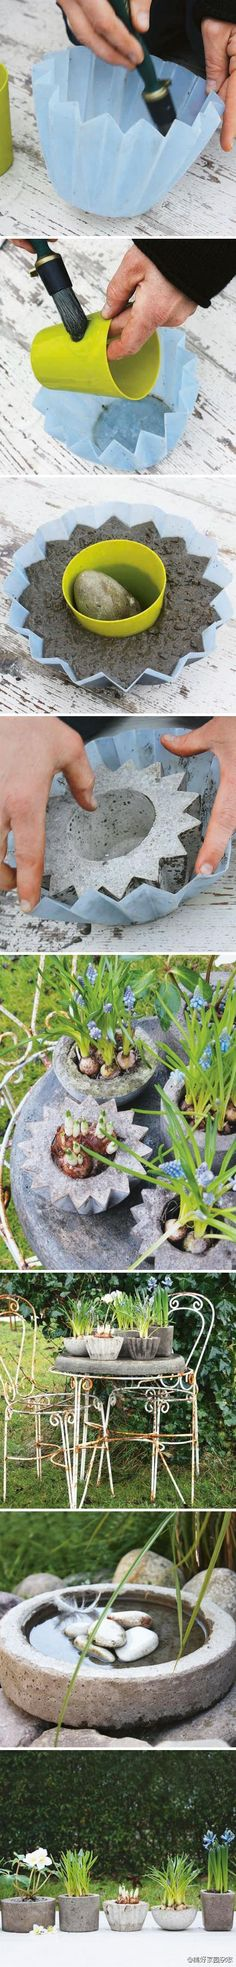 Make your own garden planters